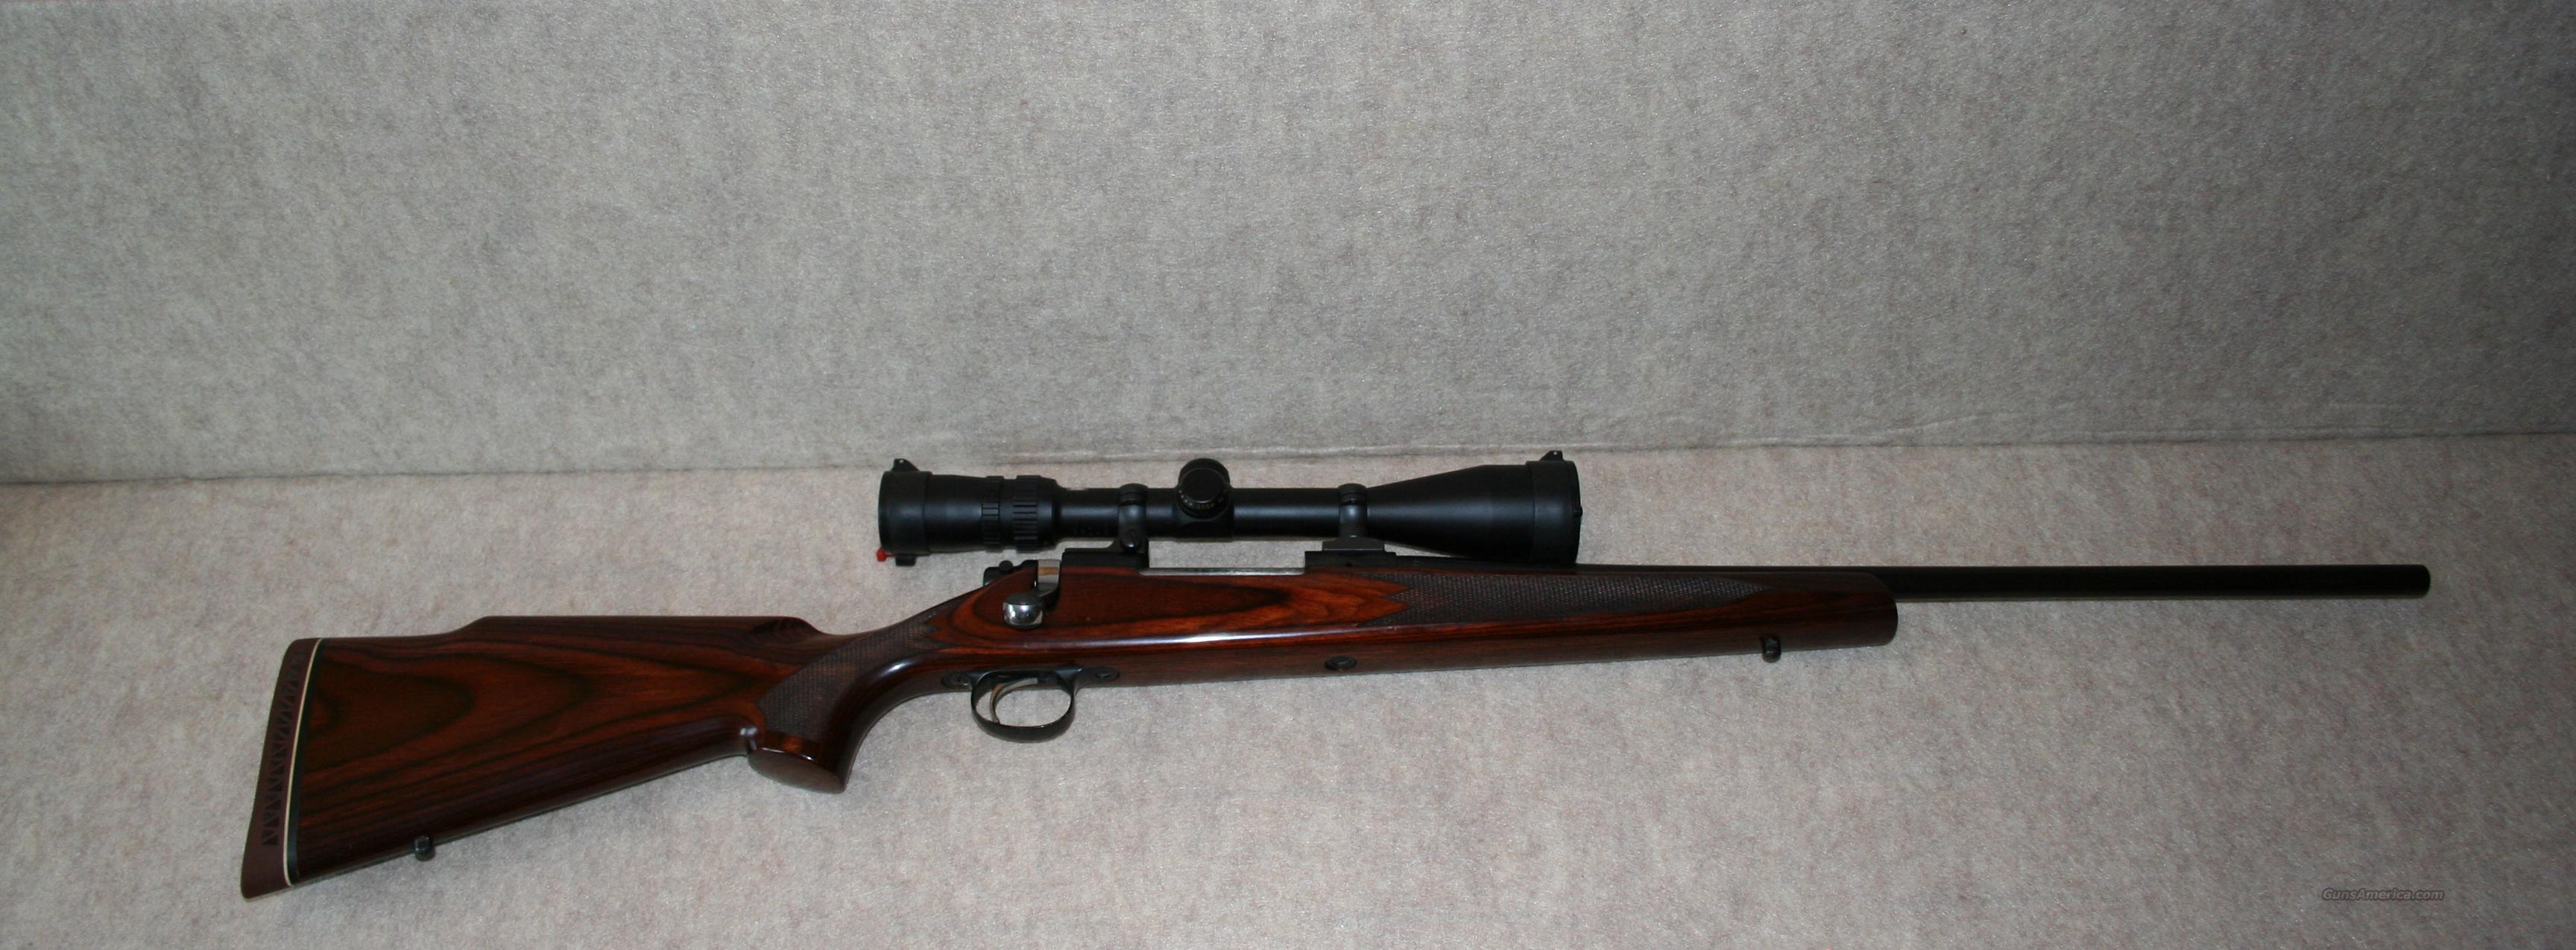 700 Deluxe Factory Laminated Stock 30-06 with Scope  Guns > Rifles > Remington Rifles - Modern > Model 700 > Sporting